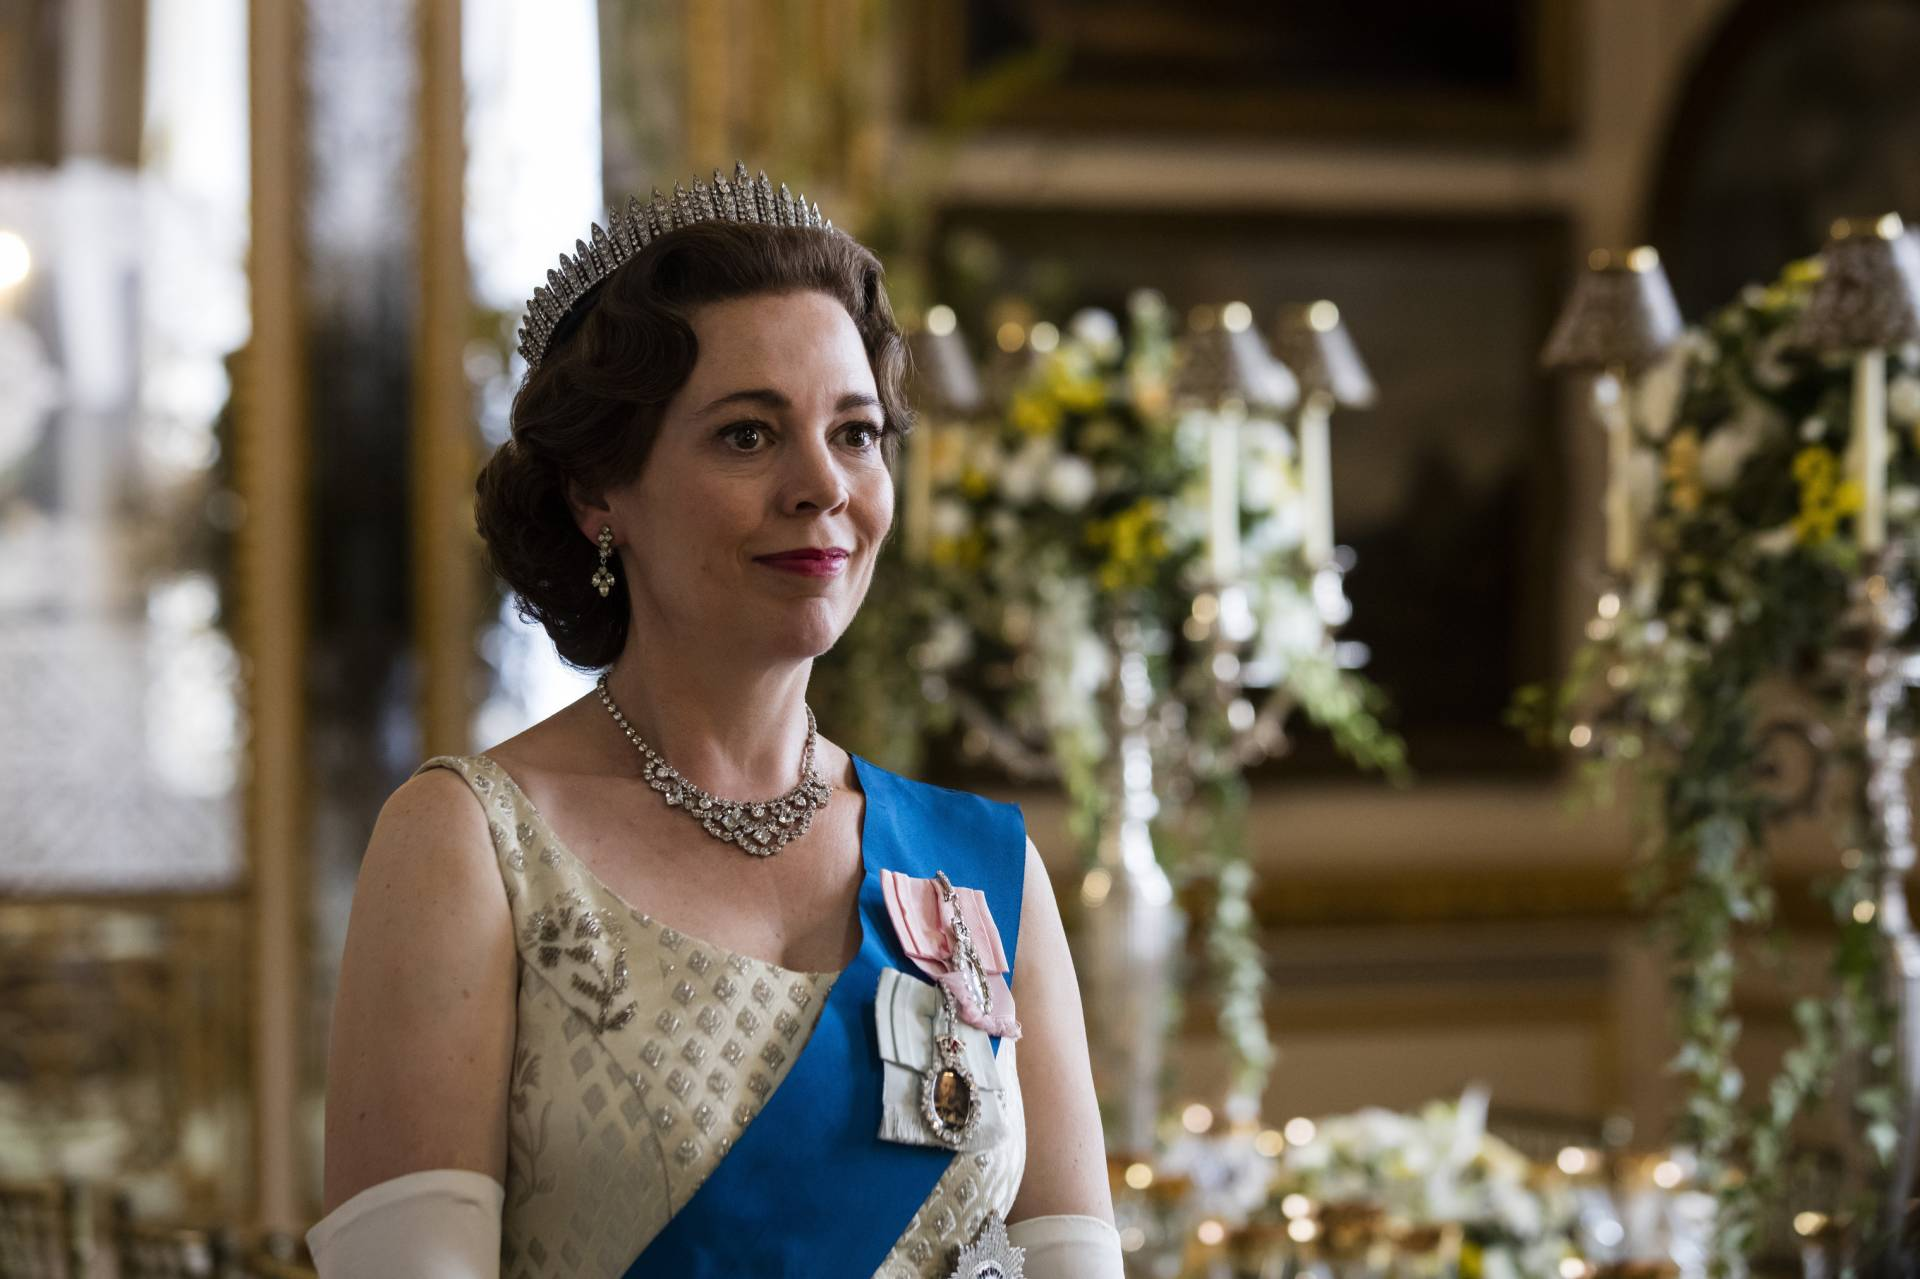 Olivia Colman portrays Queen Elizabeth II in a scene from the third season of 'The Crown'. Photo: Netflix